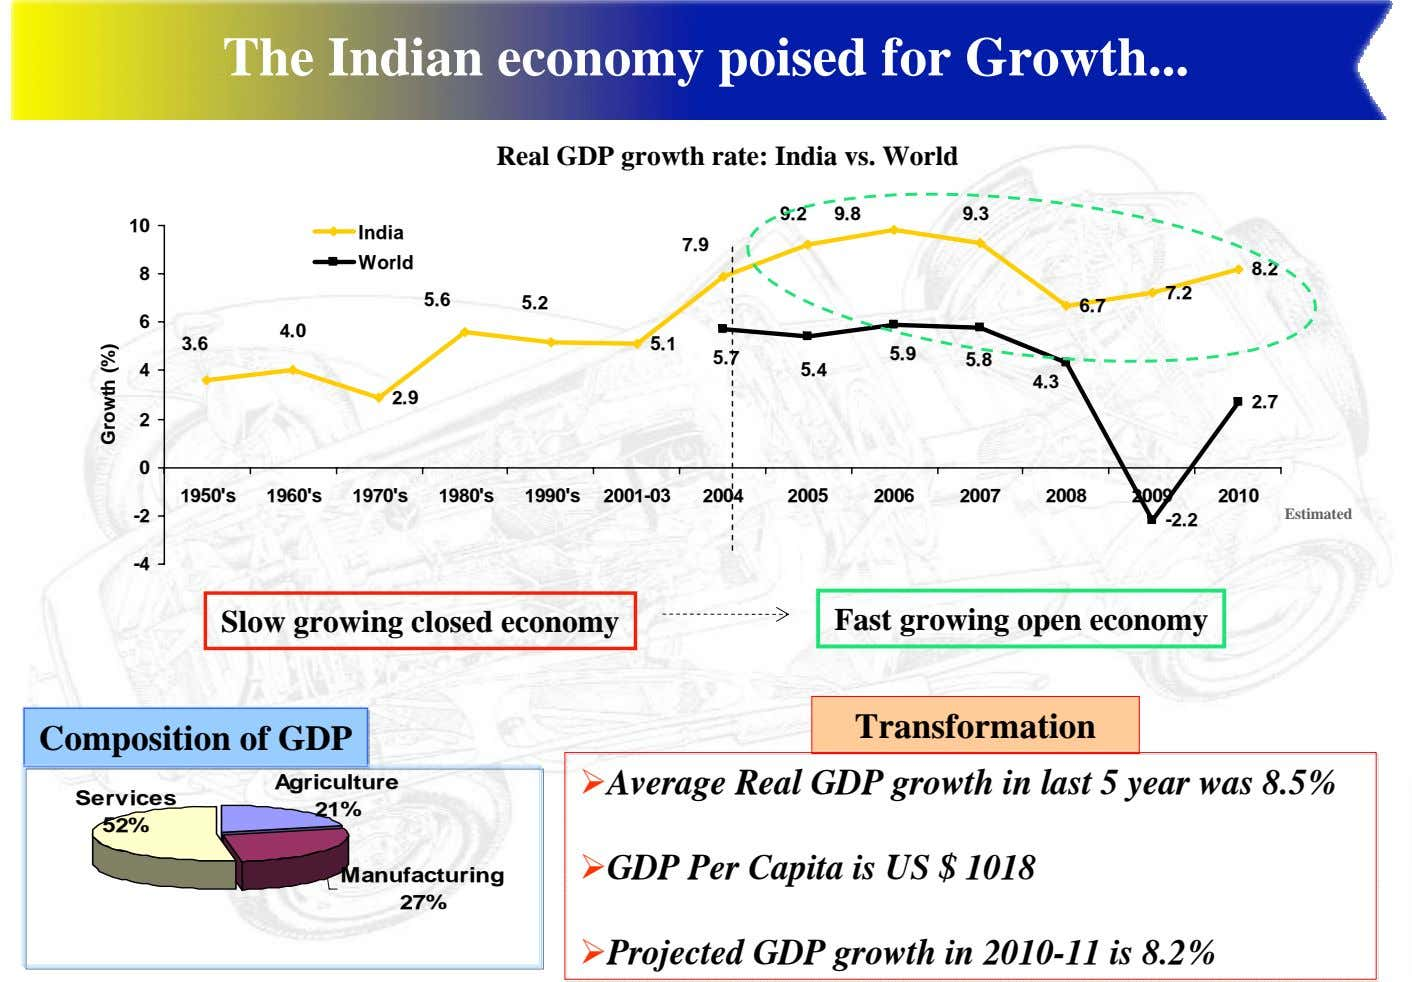 The Indian economy poised for Growth Real GDP growth rate: India vs. World 9.2 9.8